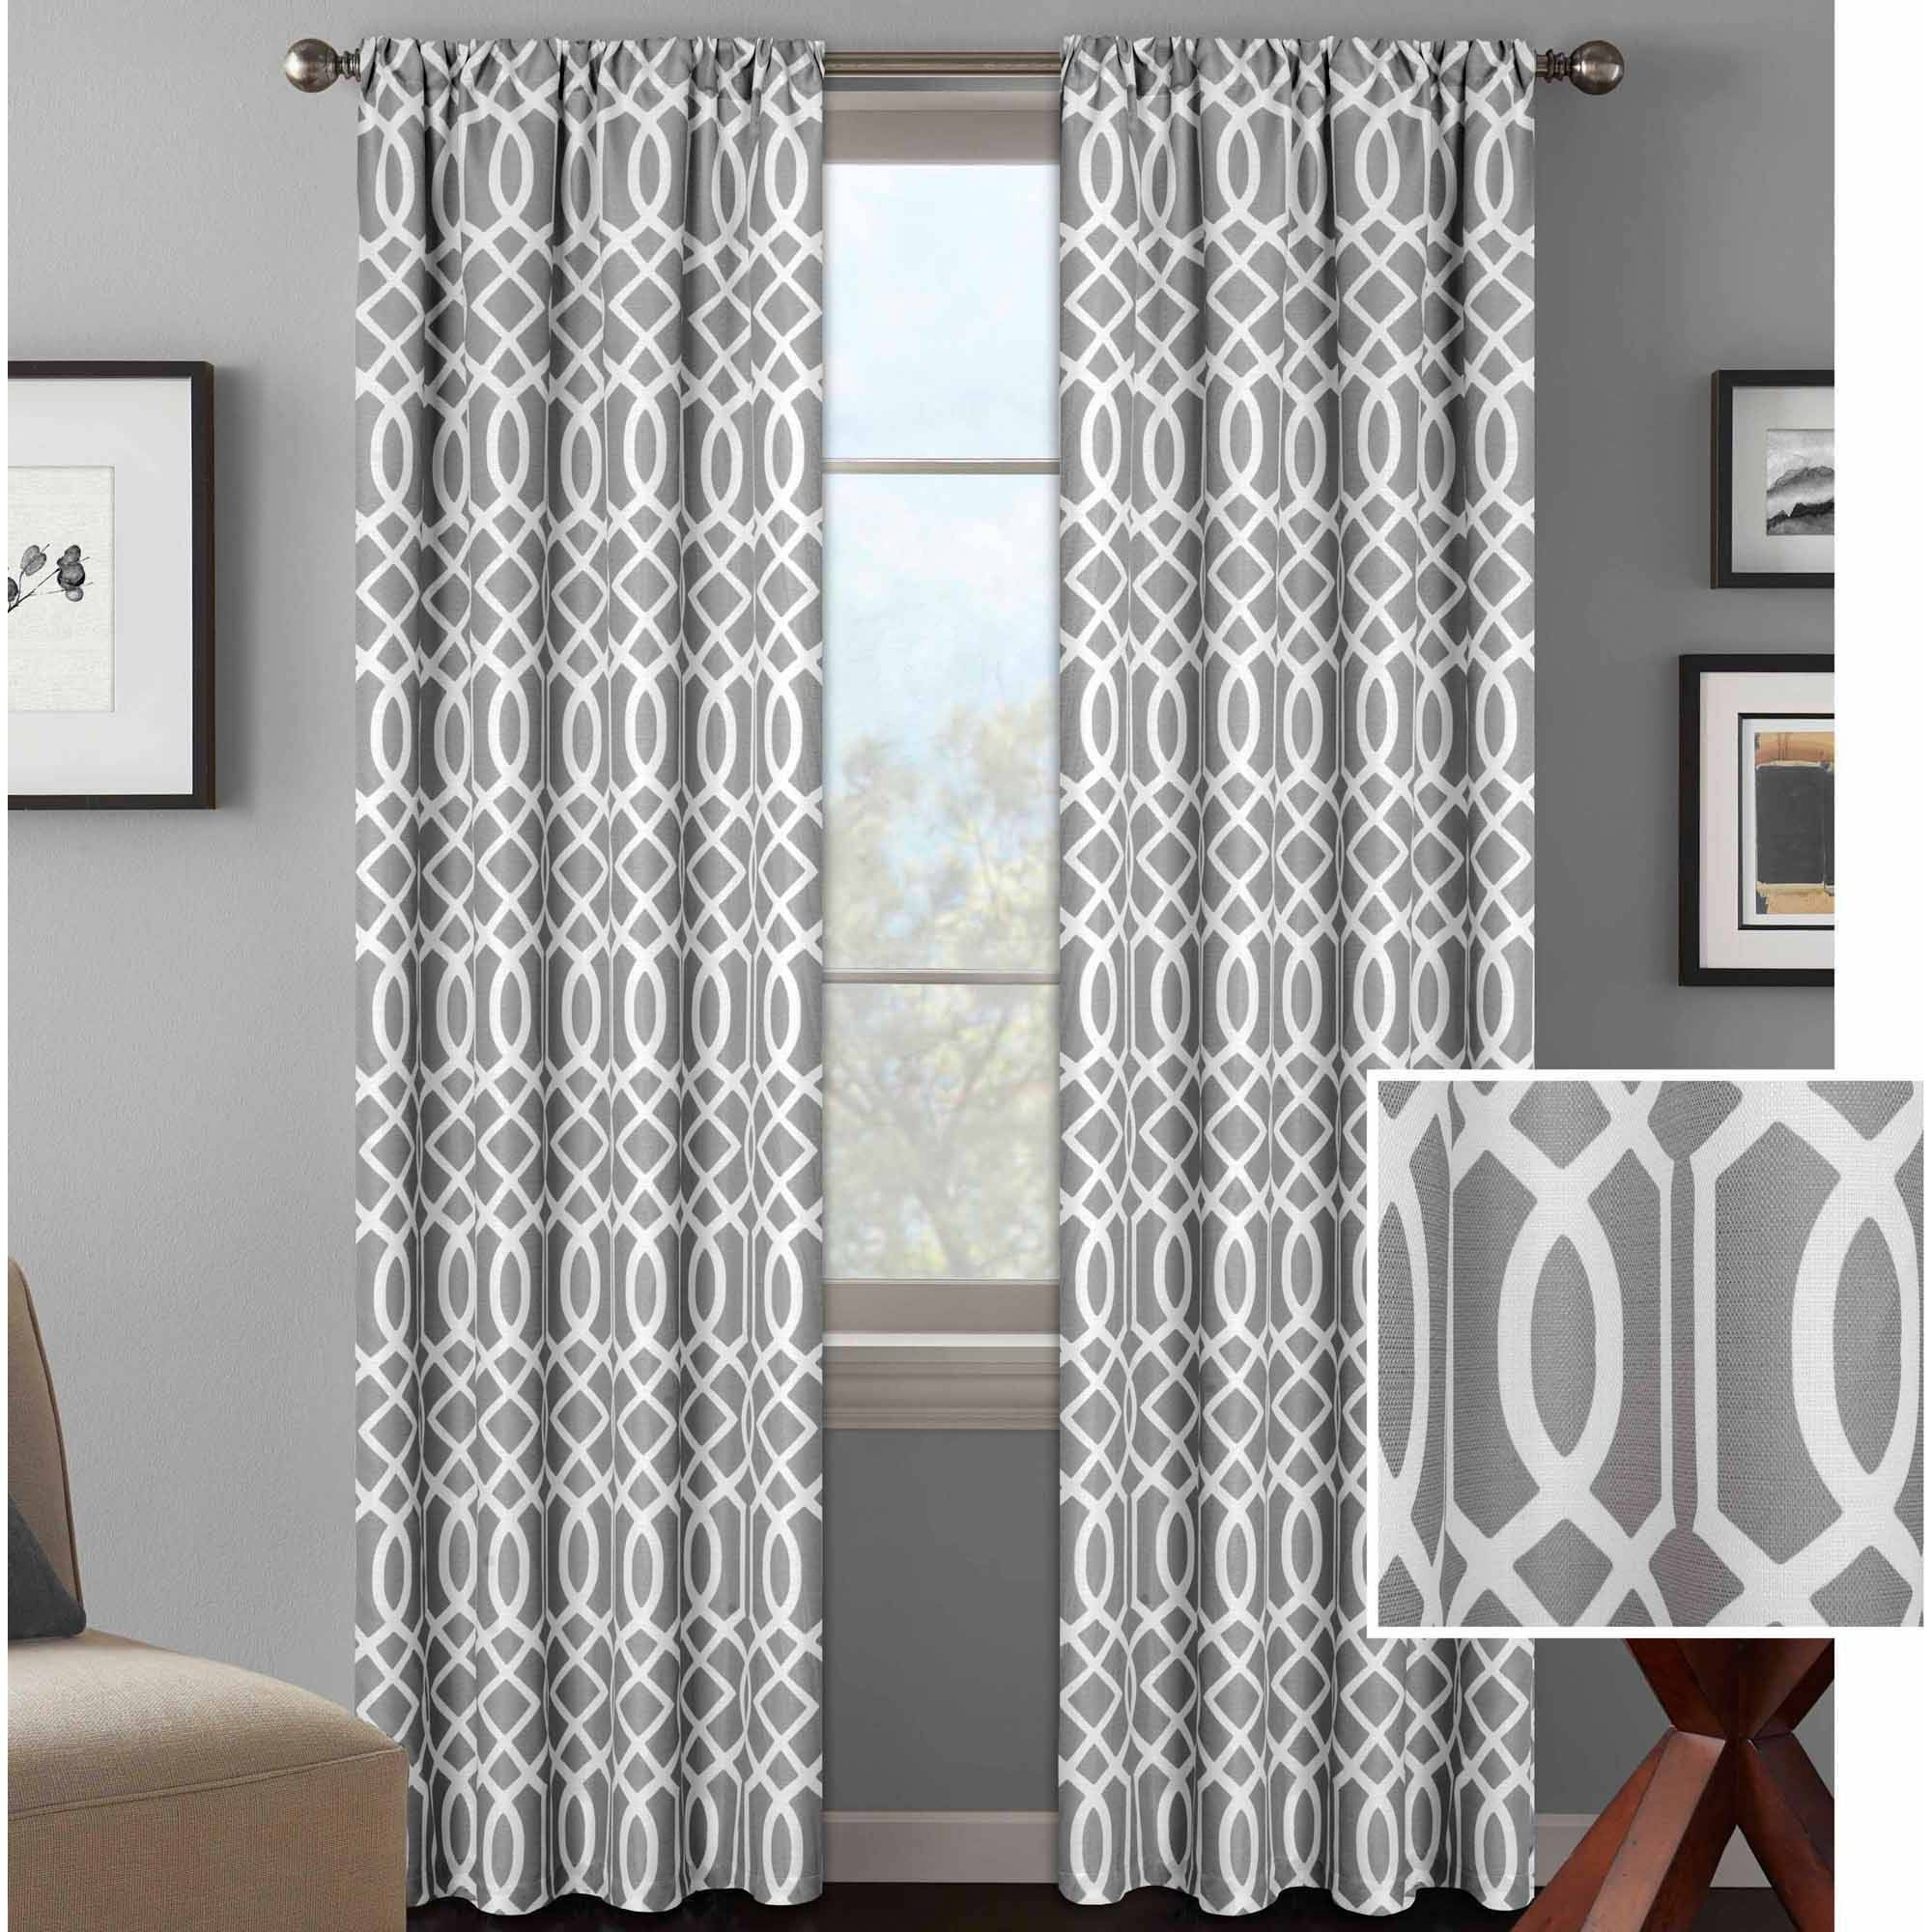 bed cute decor light applied interior curtains goods length your blackout home curtain window gray bath fancy beyond to and treatments